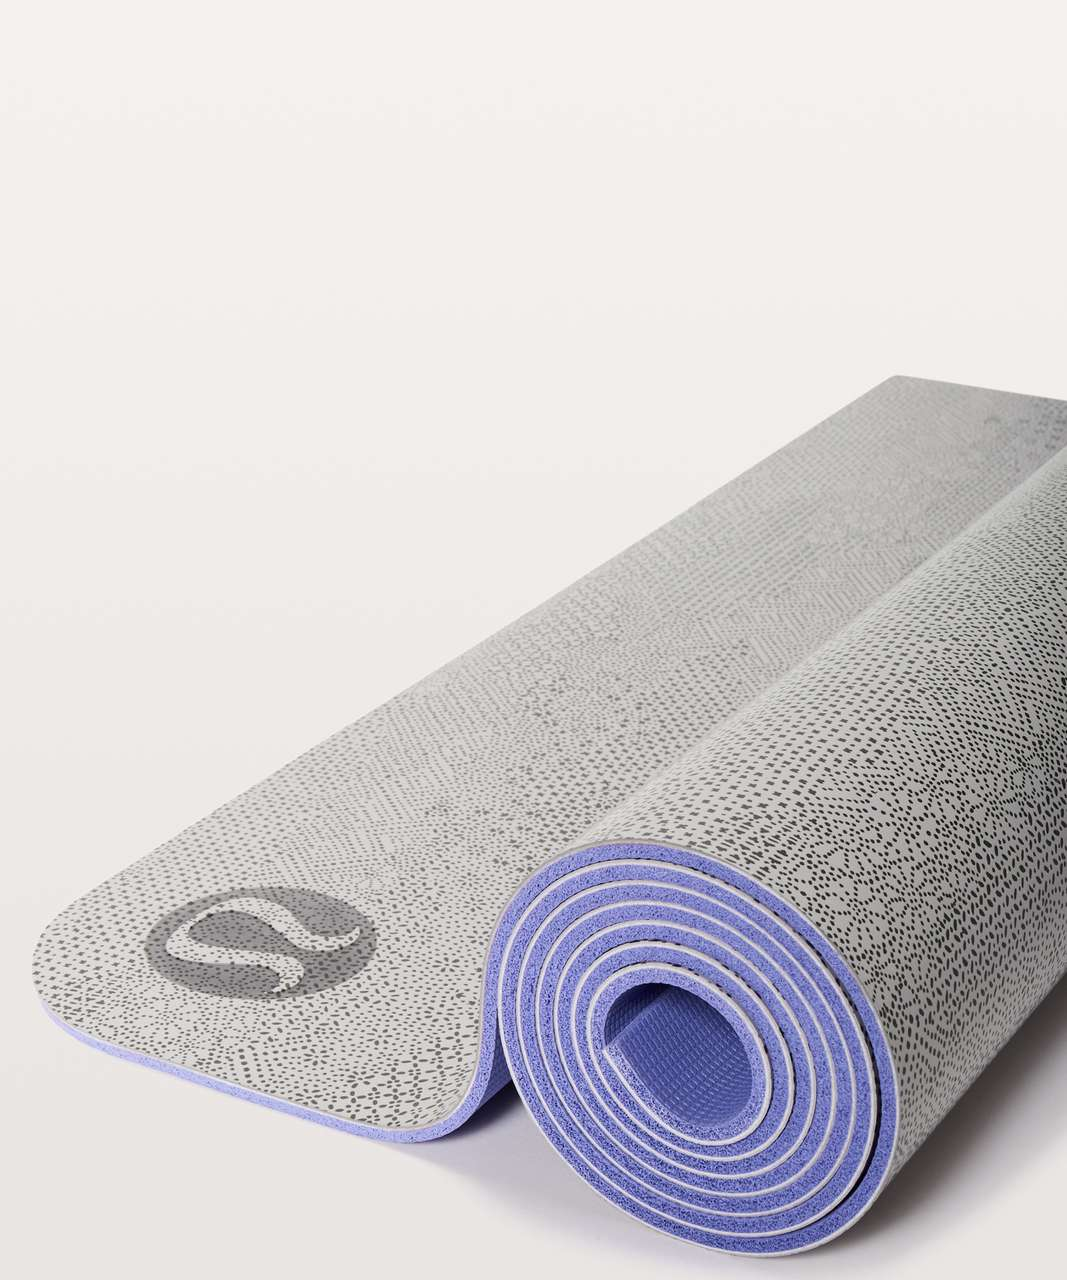 Lululemon The Reversible Mat 5mm - Meisai Maxi Ice Grey Black / Solar Purple